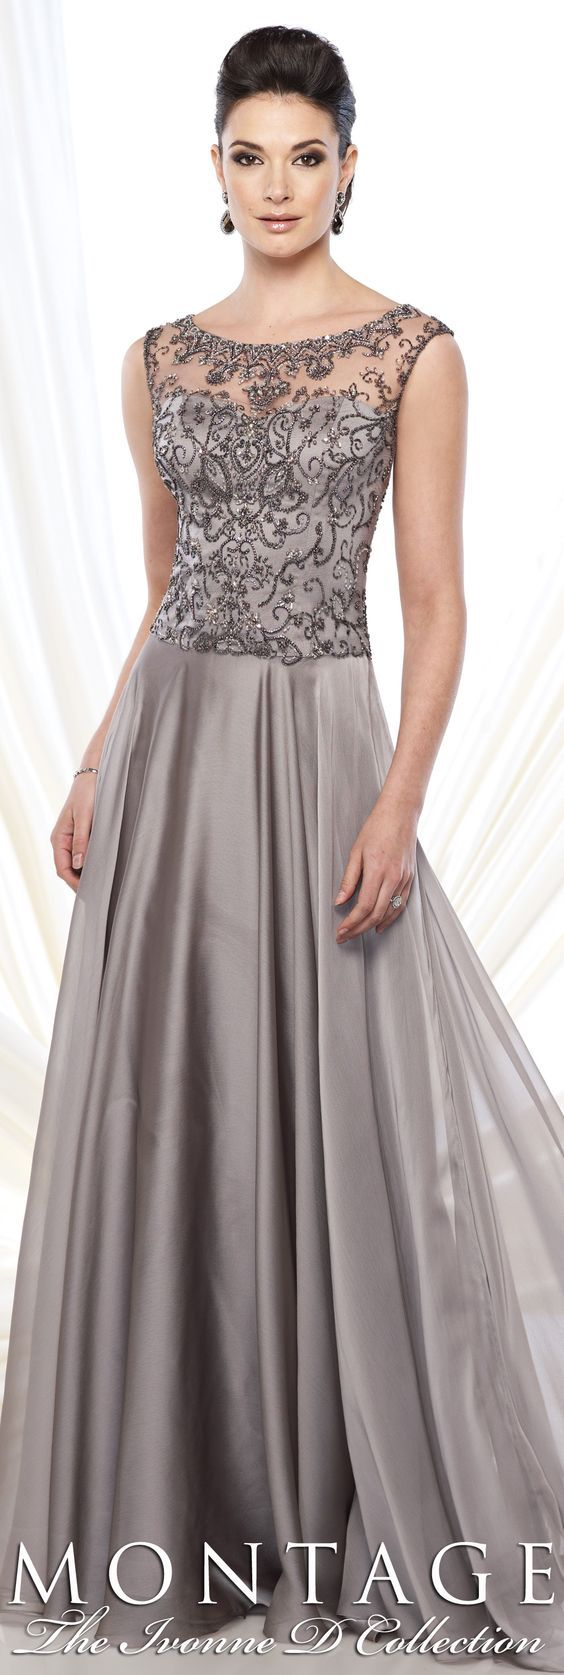 Montage The Ivonne D Collection  Fall 2015  - Style No. 215D12  #eveninggowns: